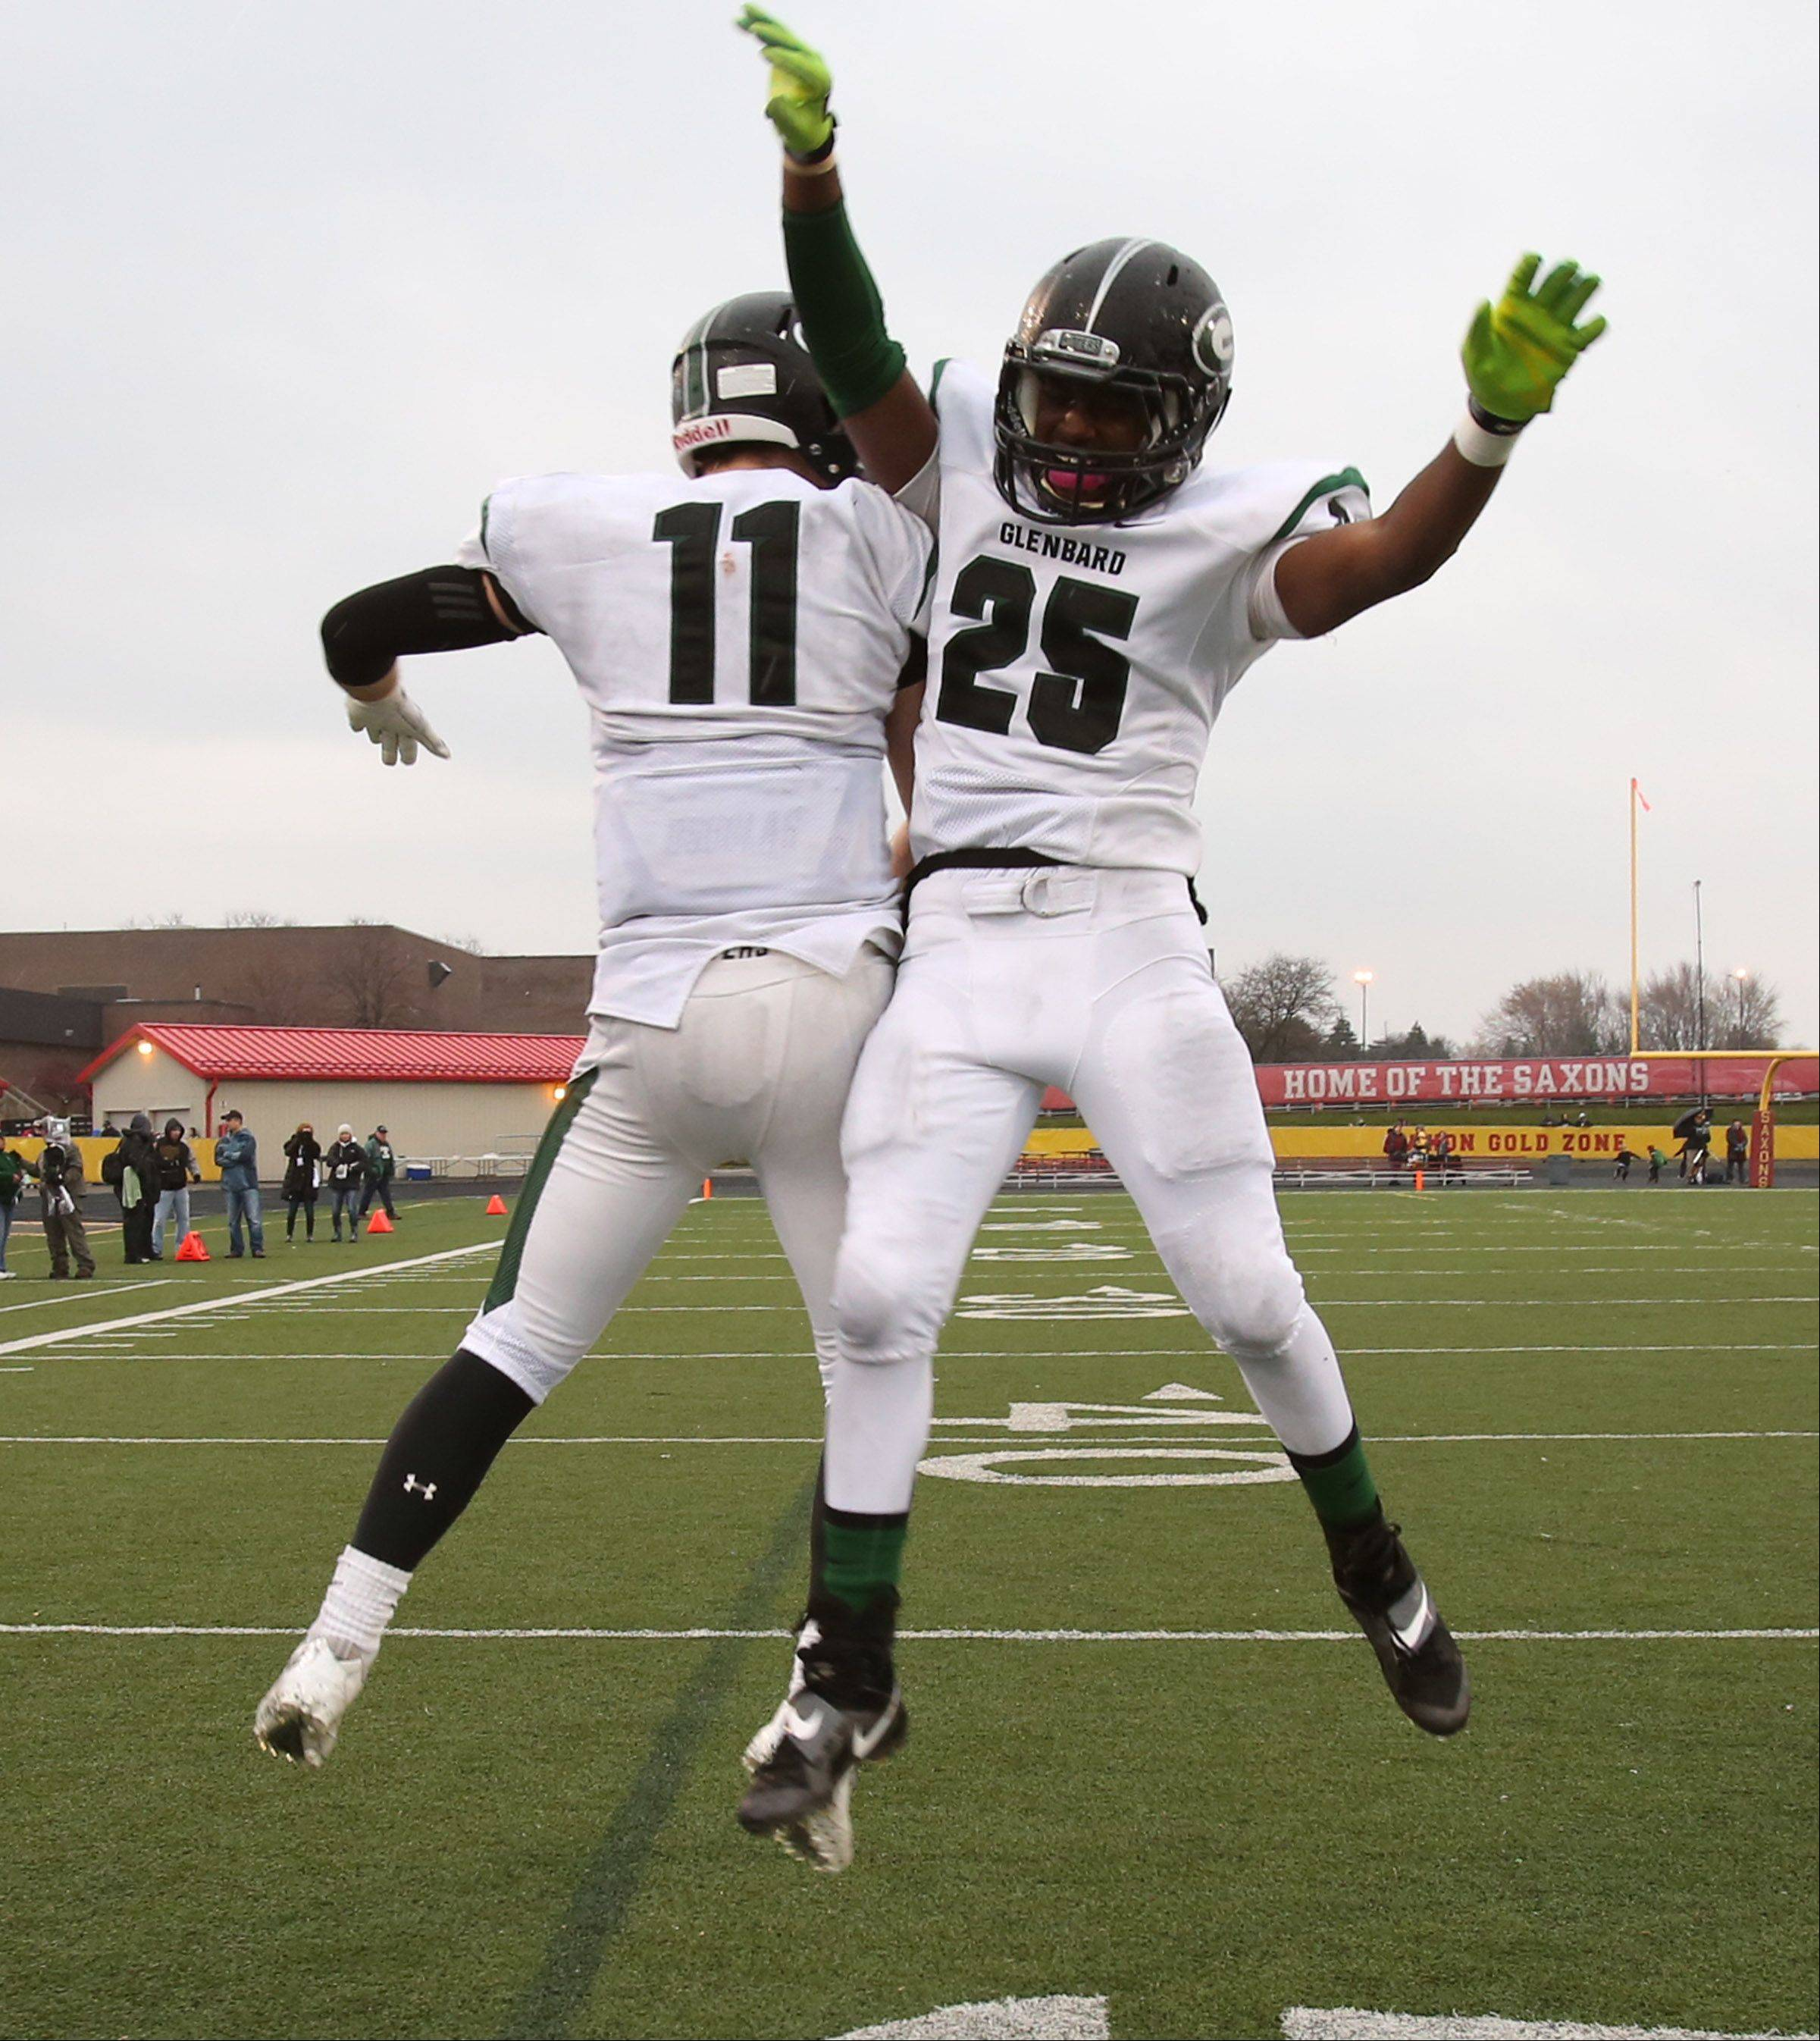 Glenbard West Grant Greeno, left, and Jordon Andrews celebrate as the clock expires as Glenbard West wins 42-21 over Schaumburg in a quarterfinal playoff game.